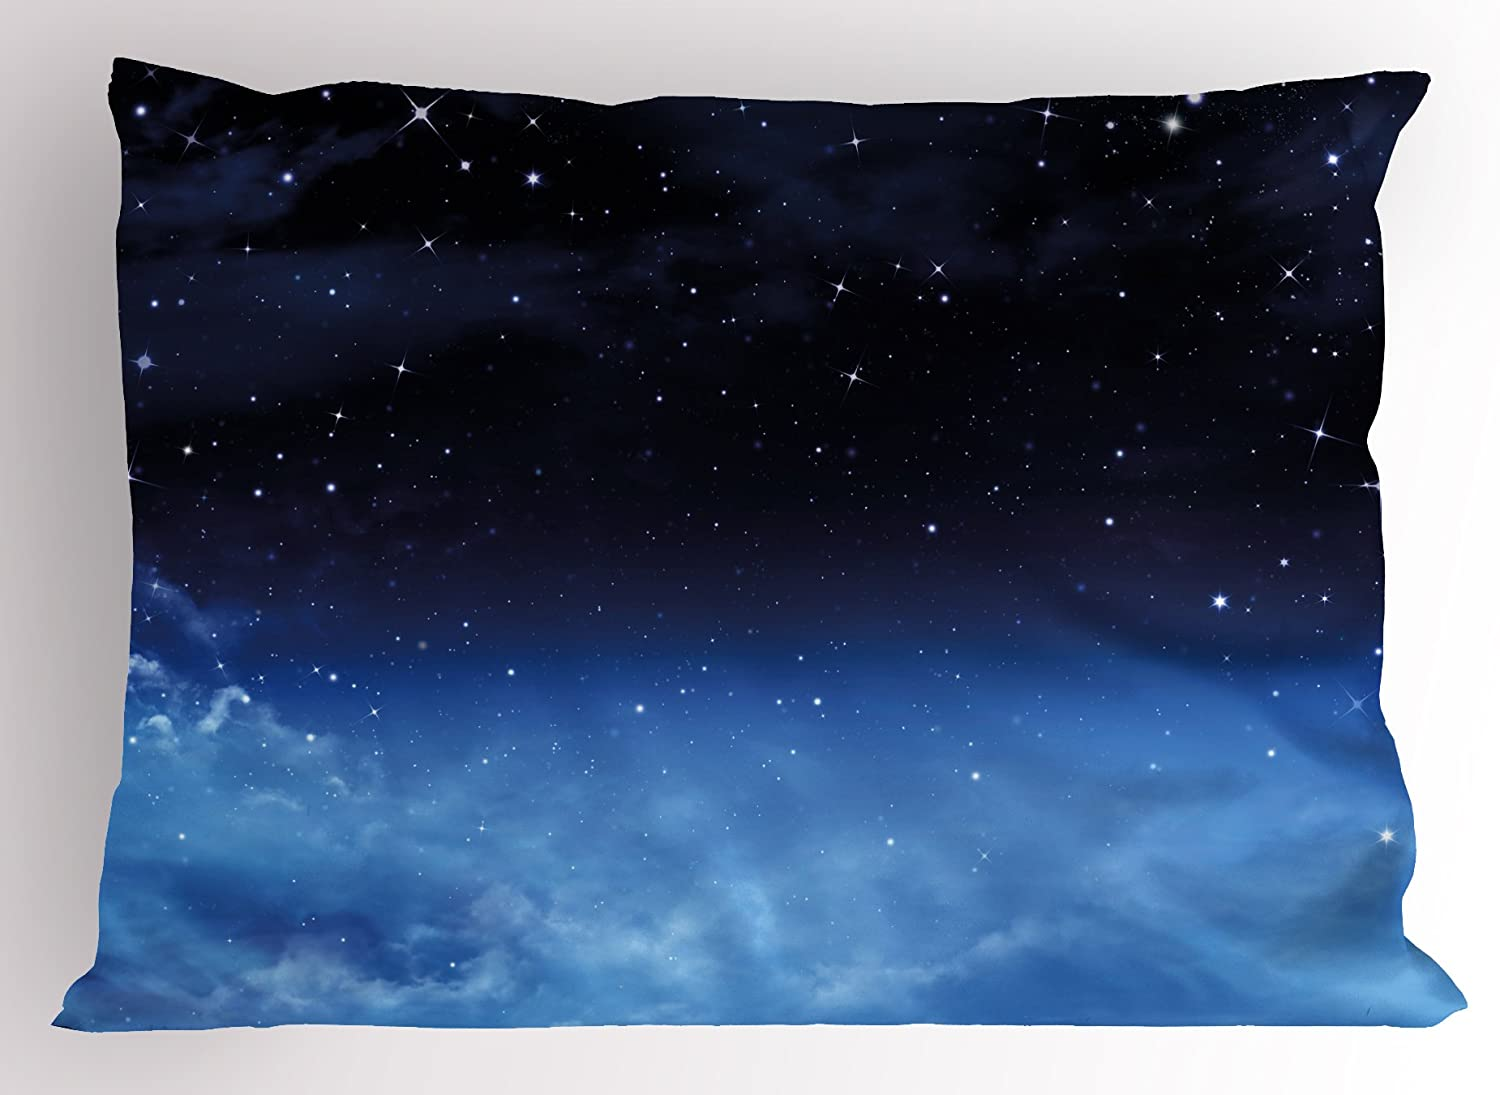 Lunarable Night Sky Pillow Sham, Ombre Colored Nebula Space Clouds and Dot Like Stars Image, Decorative Standard Queen Size Printed Pillowcase, 30